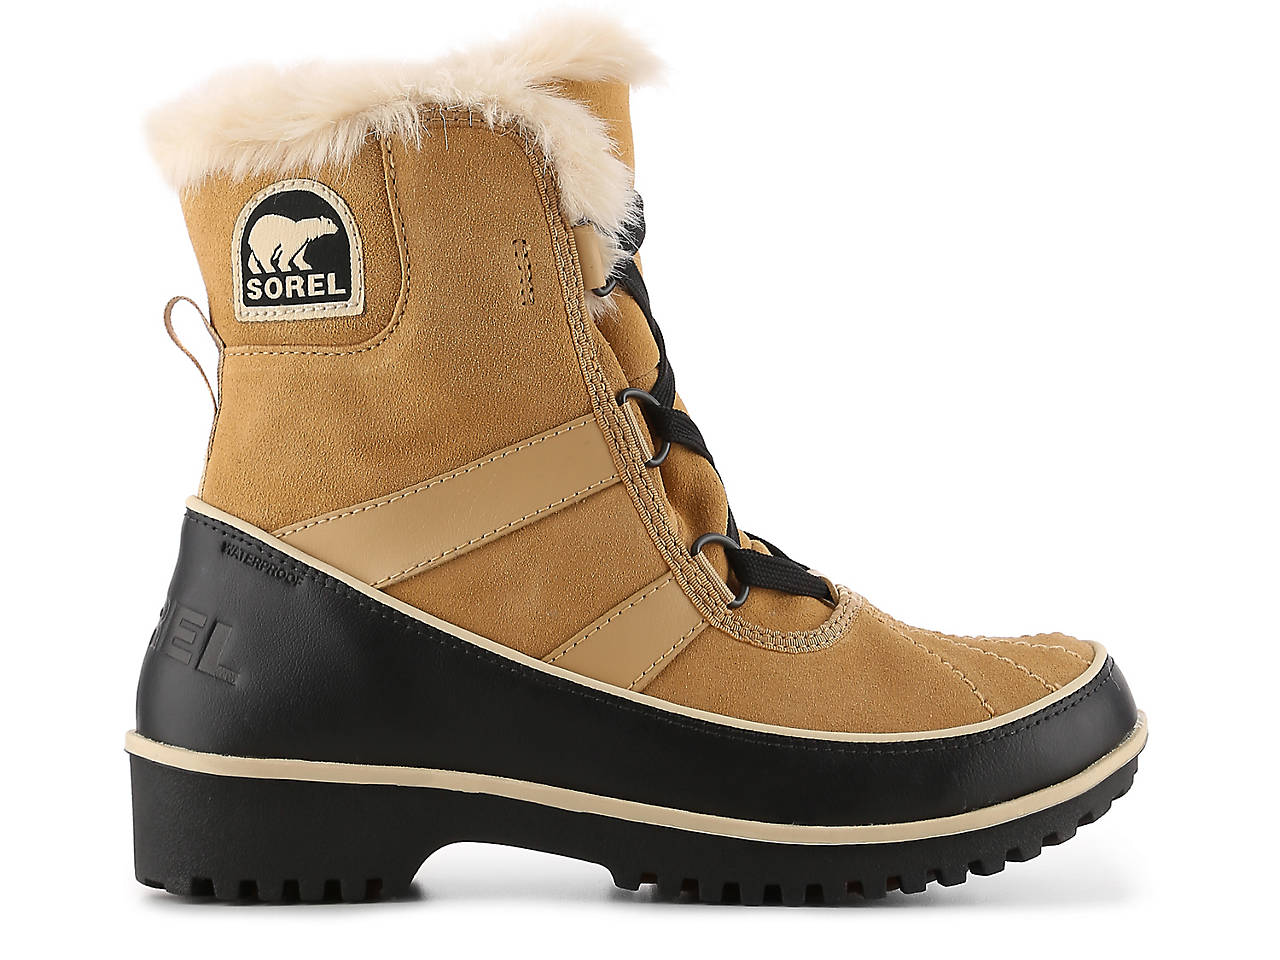 Tivoli II Snow Boot holiday gift guide for her